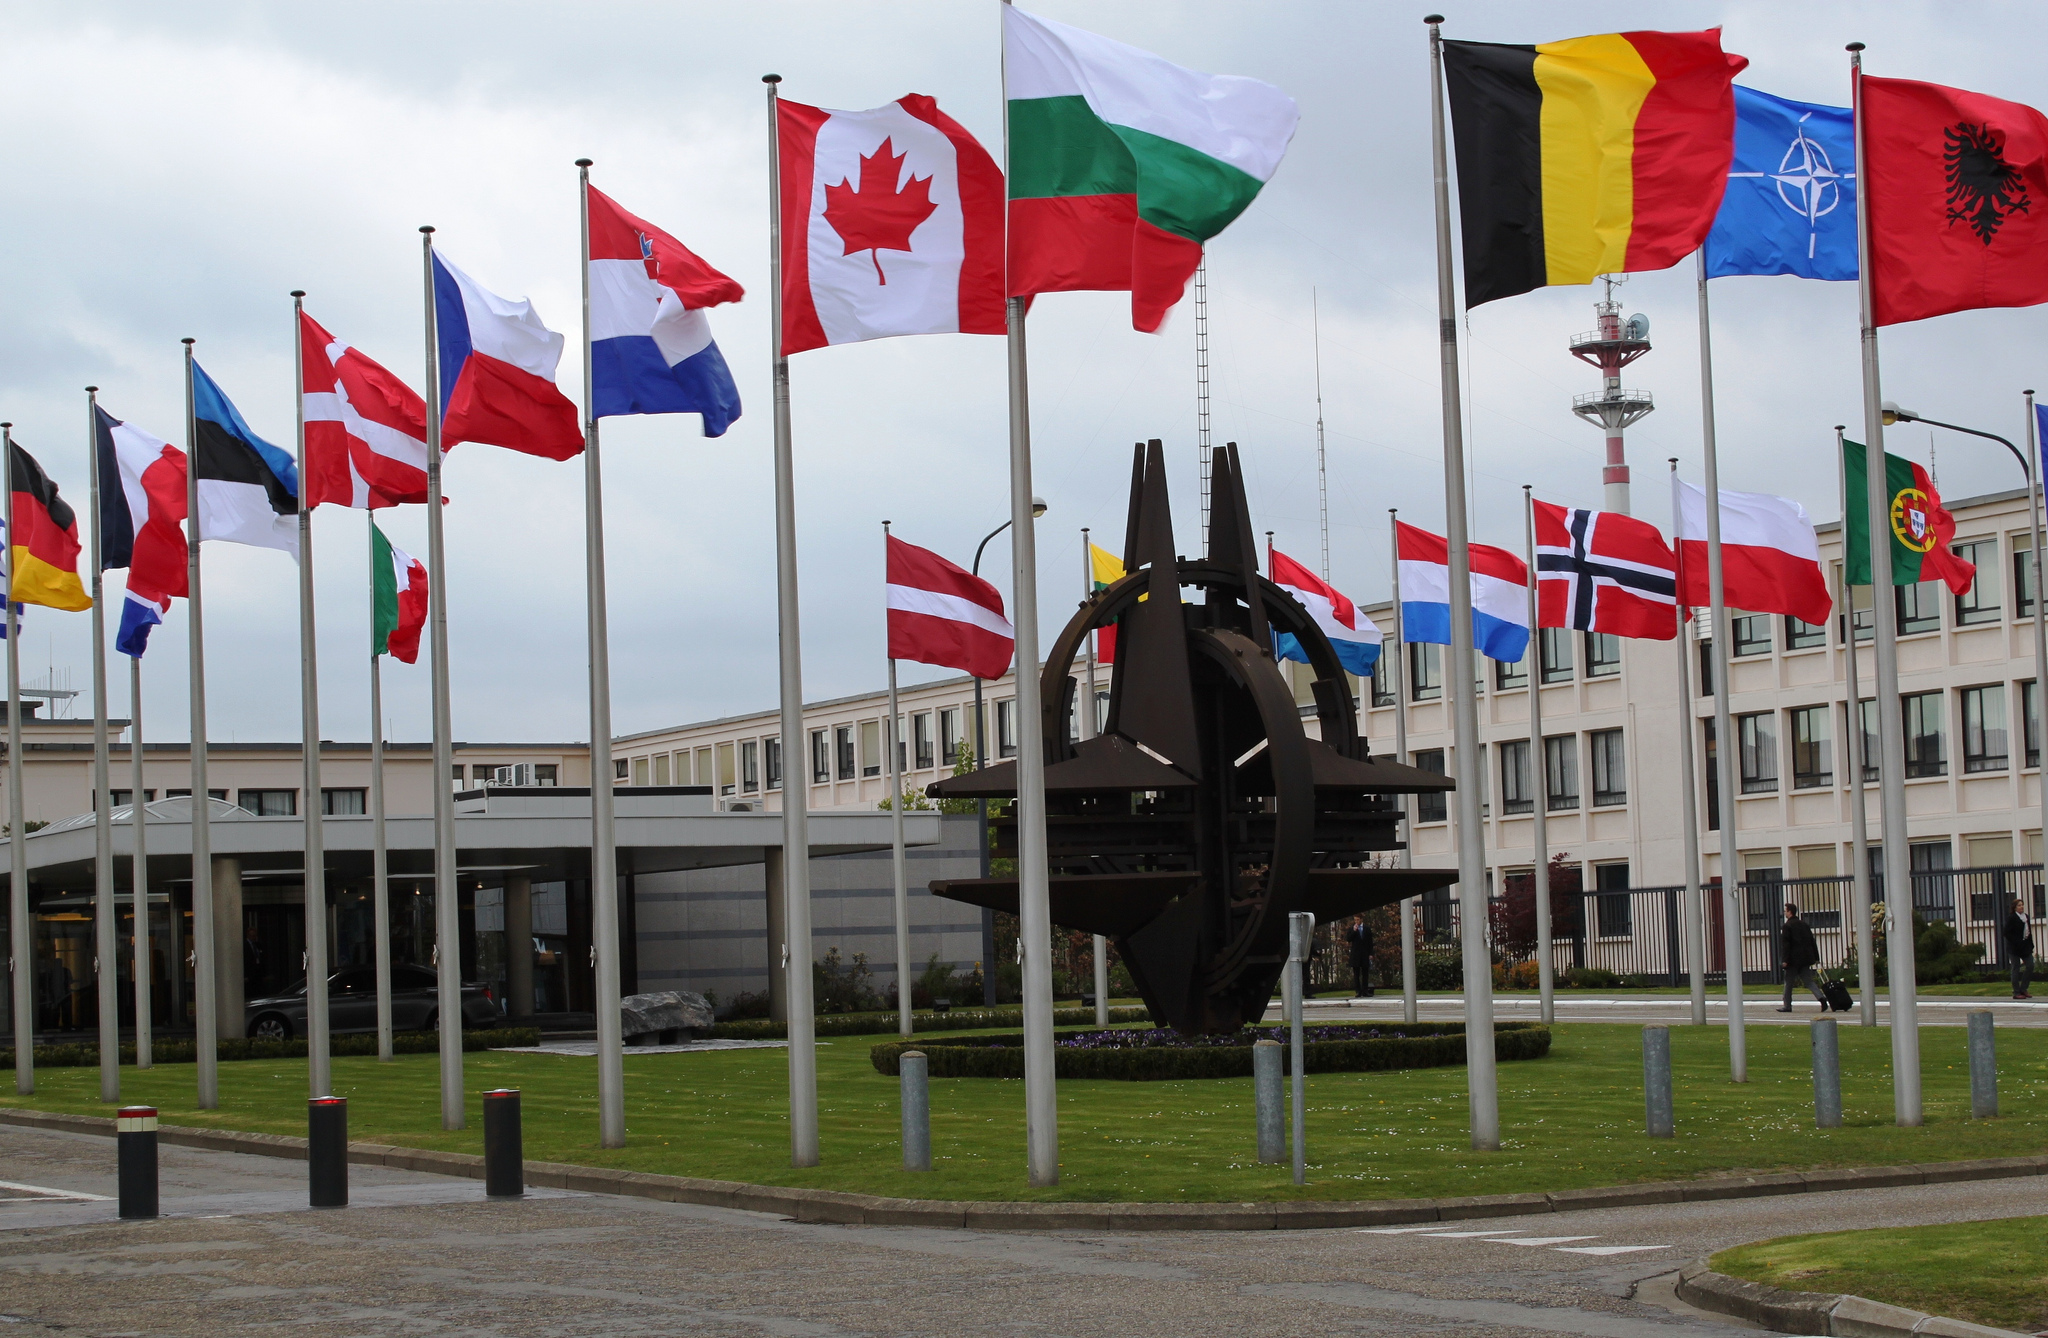 A view of NATO headquarters. Via Utenriksdepartementet UD.